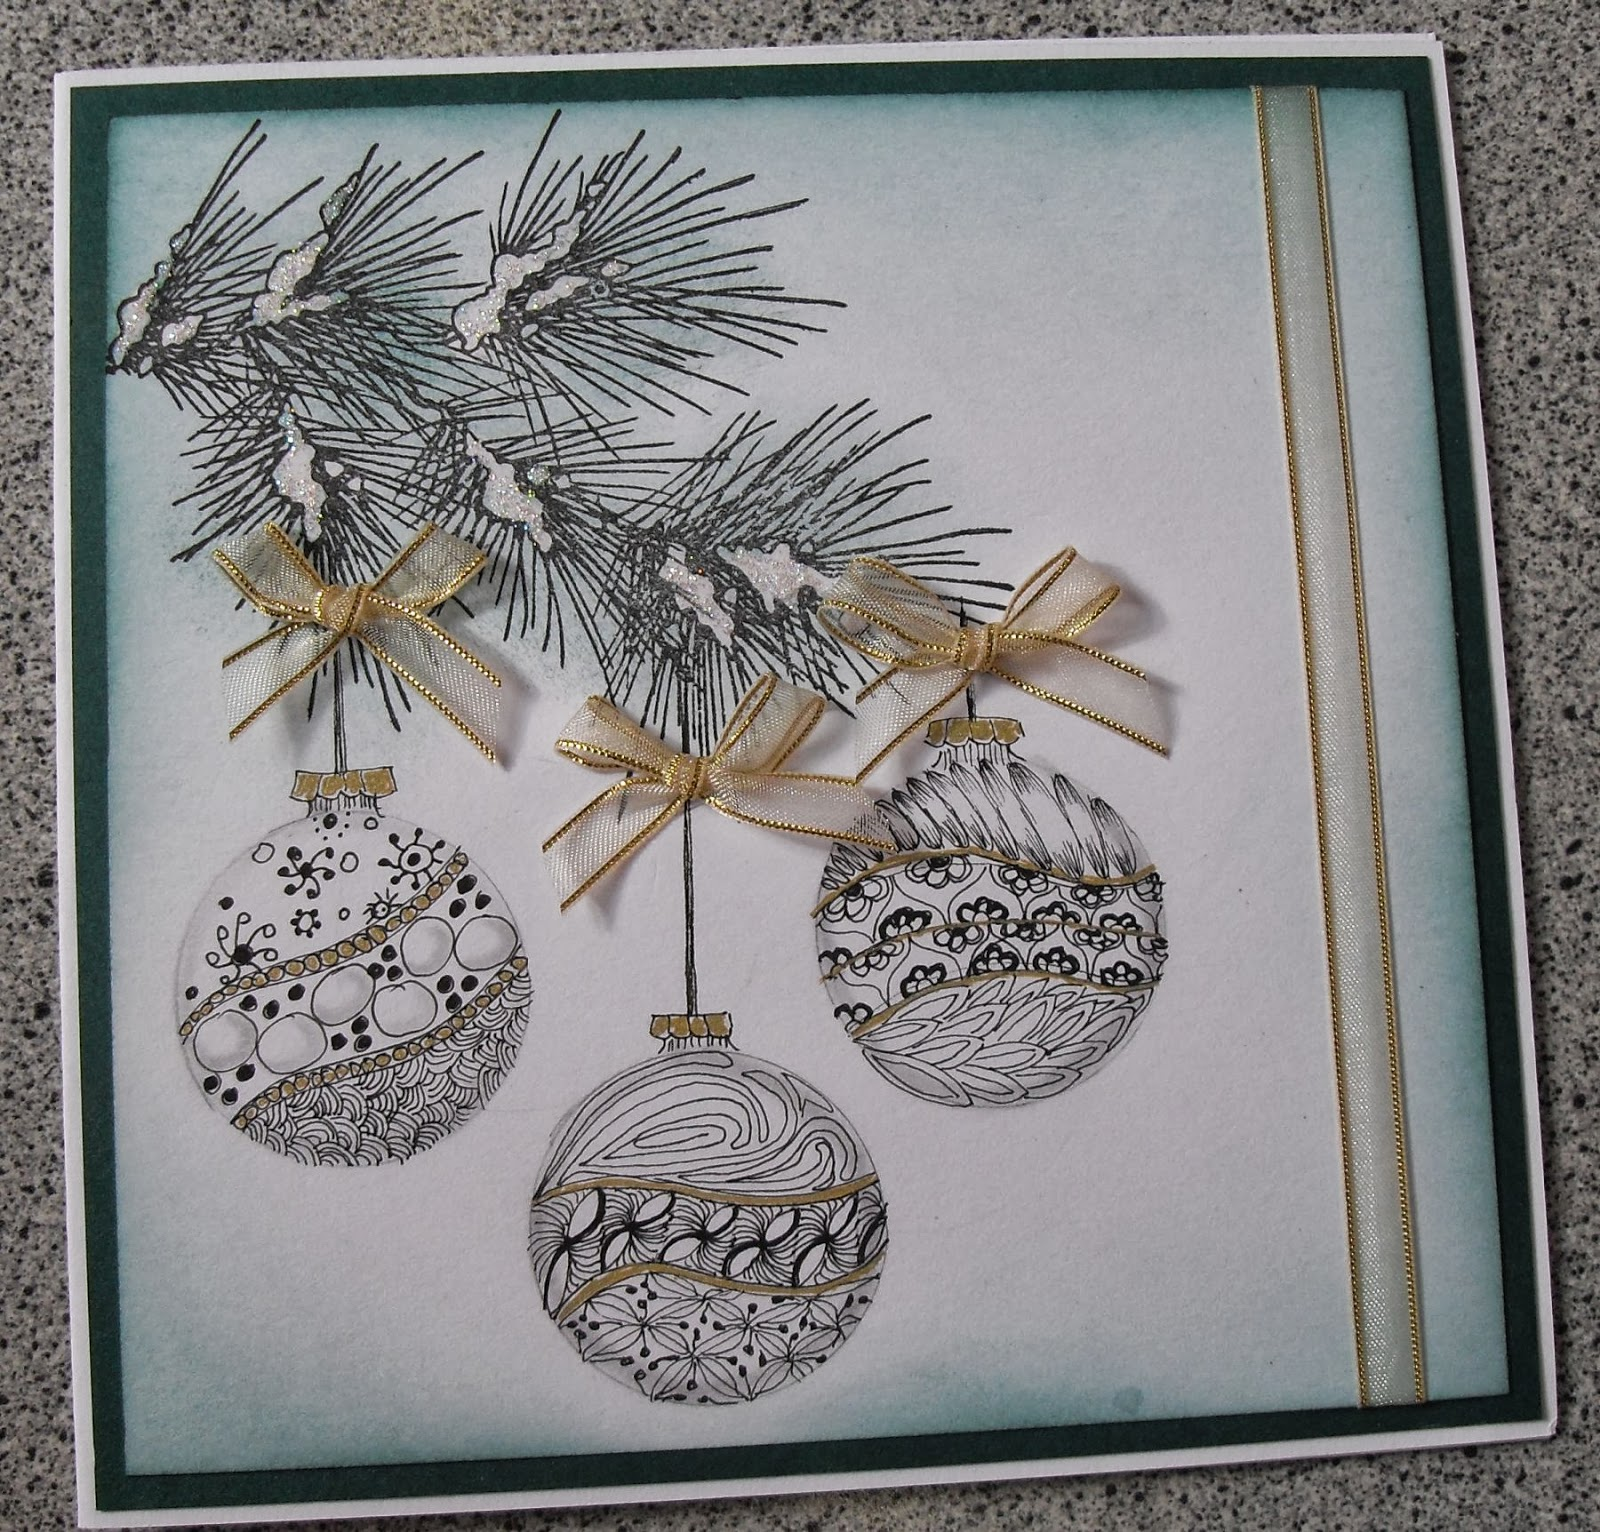 S & D Card Crafts: My Zentangle cards